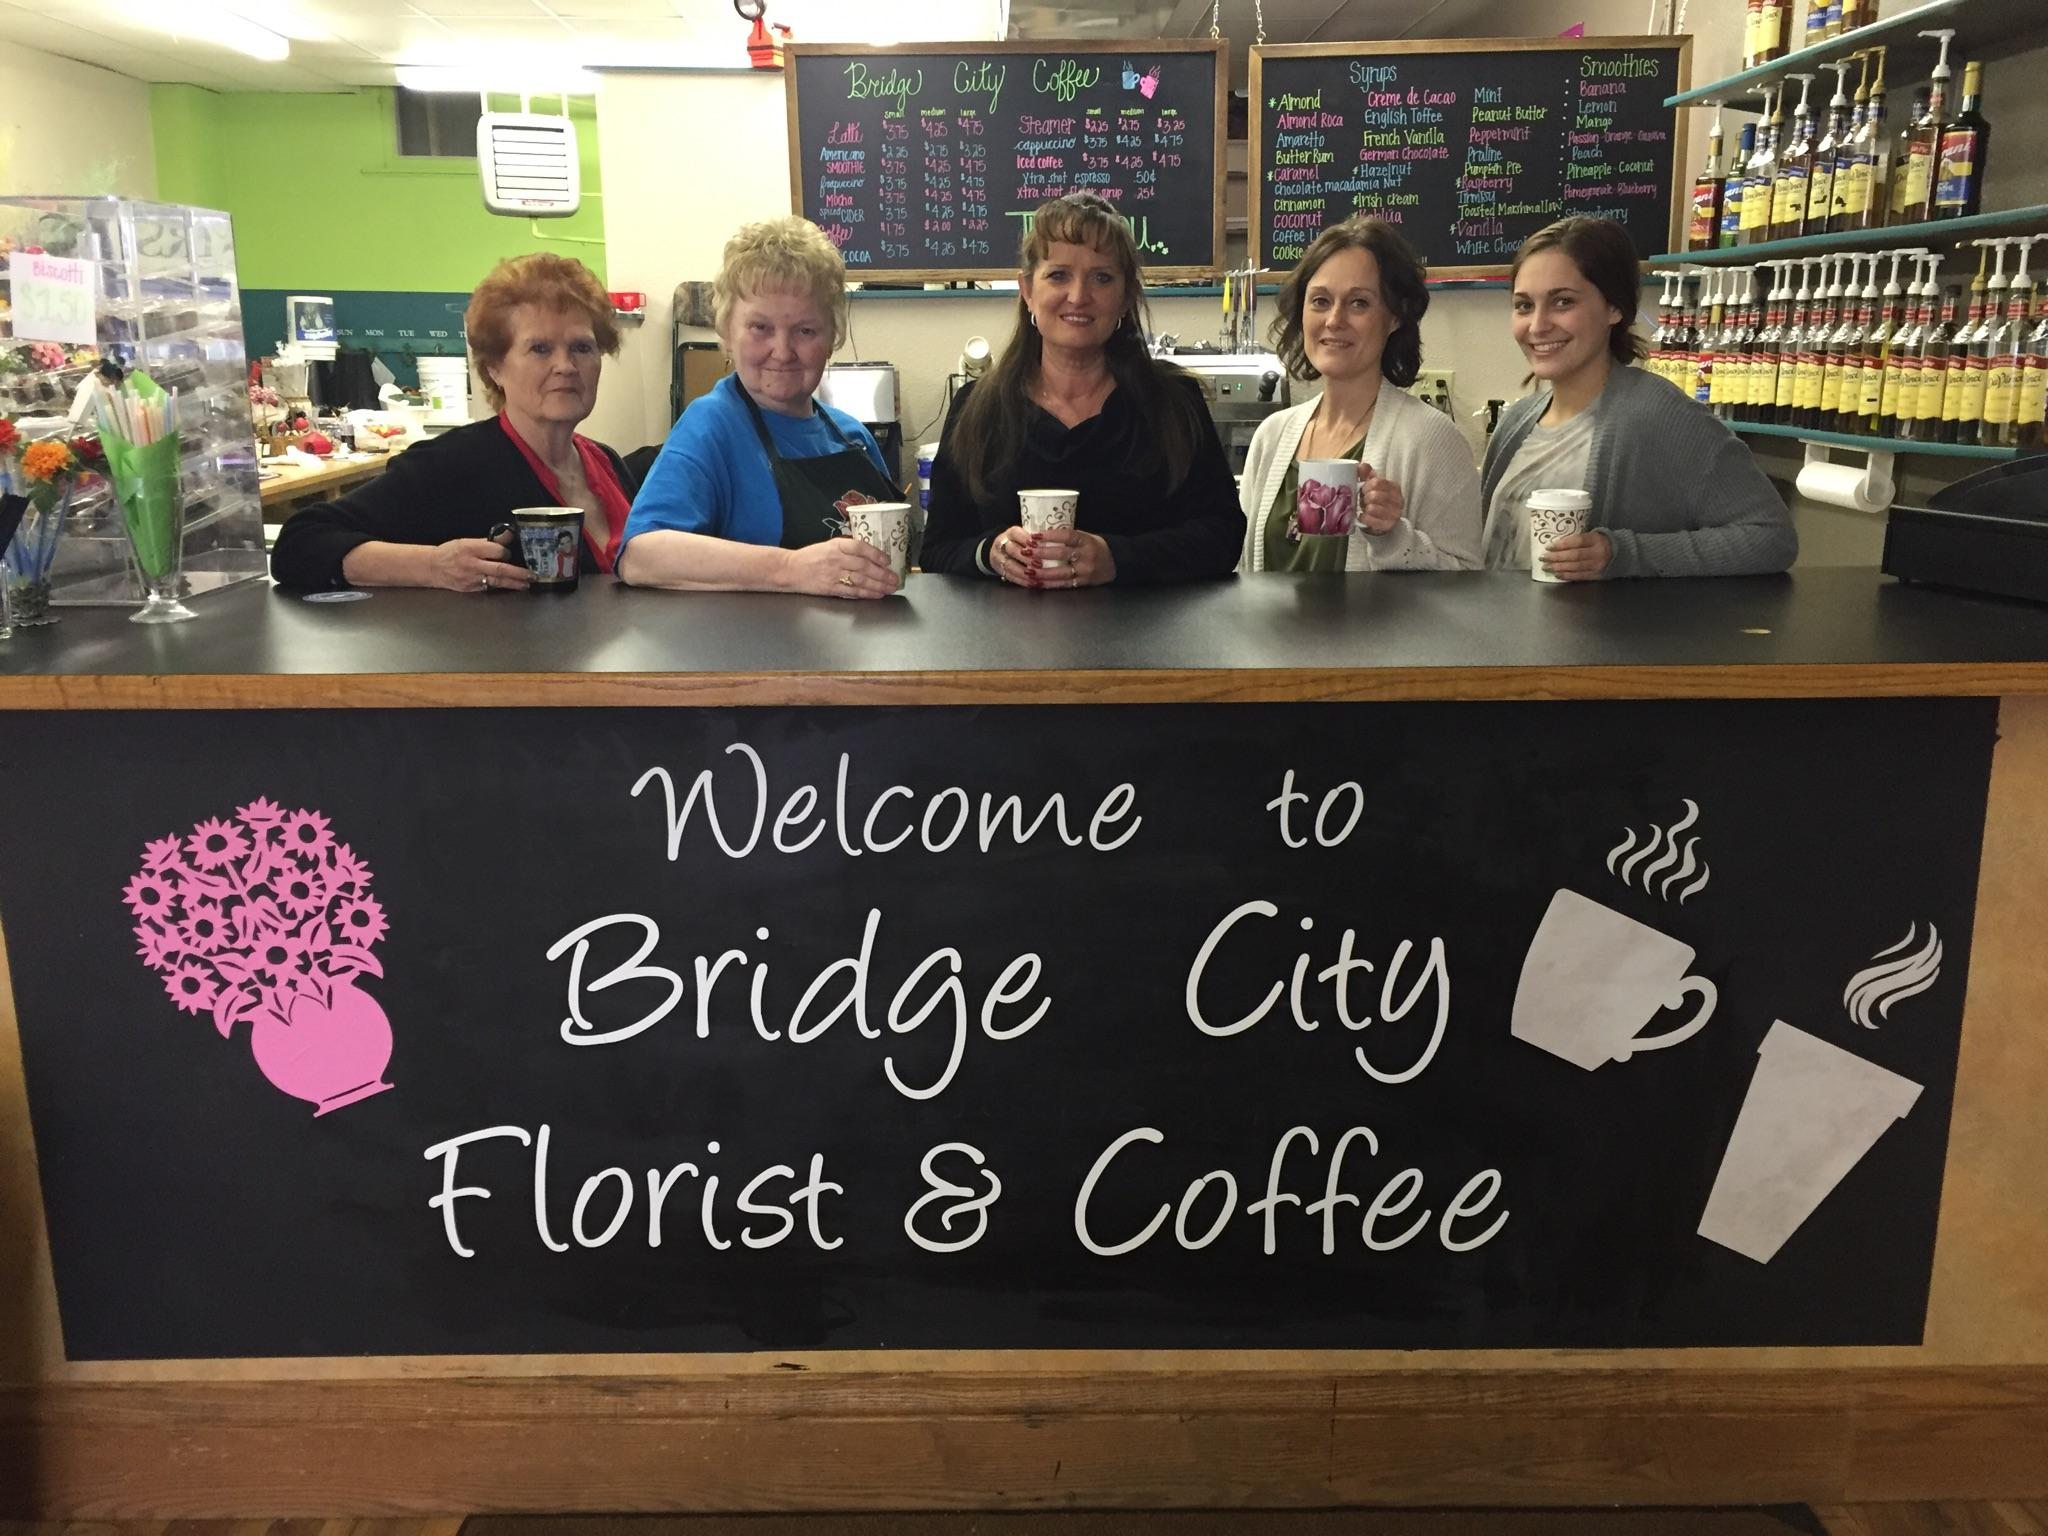 Bridge City Florist & Coffee, Mobridge SD